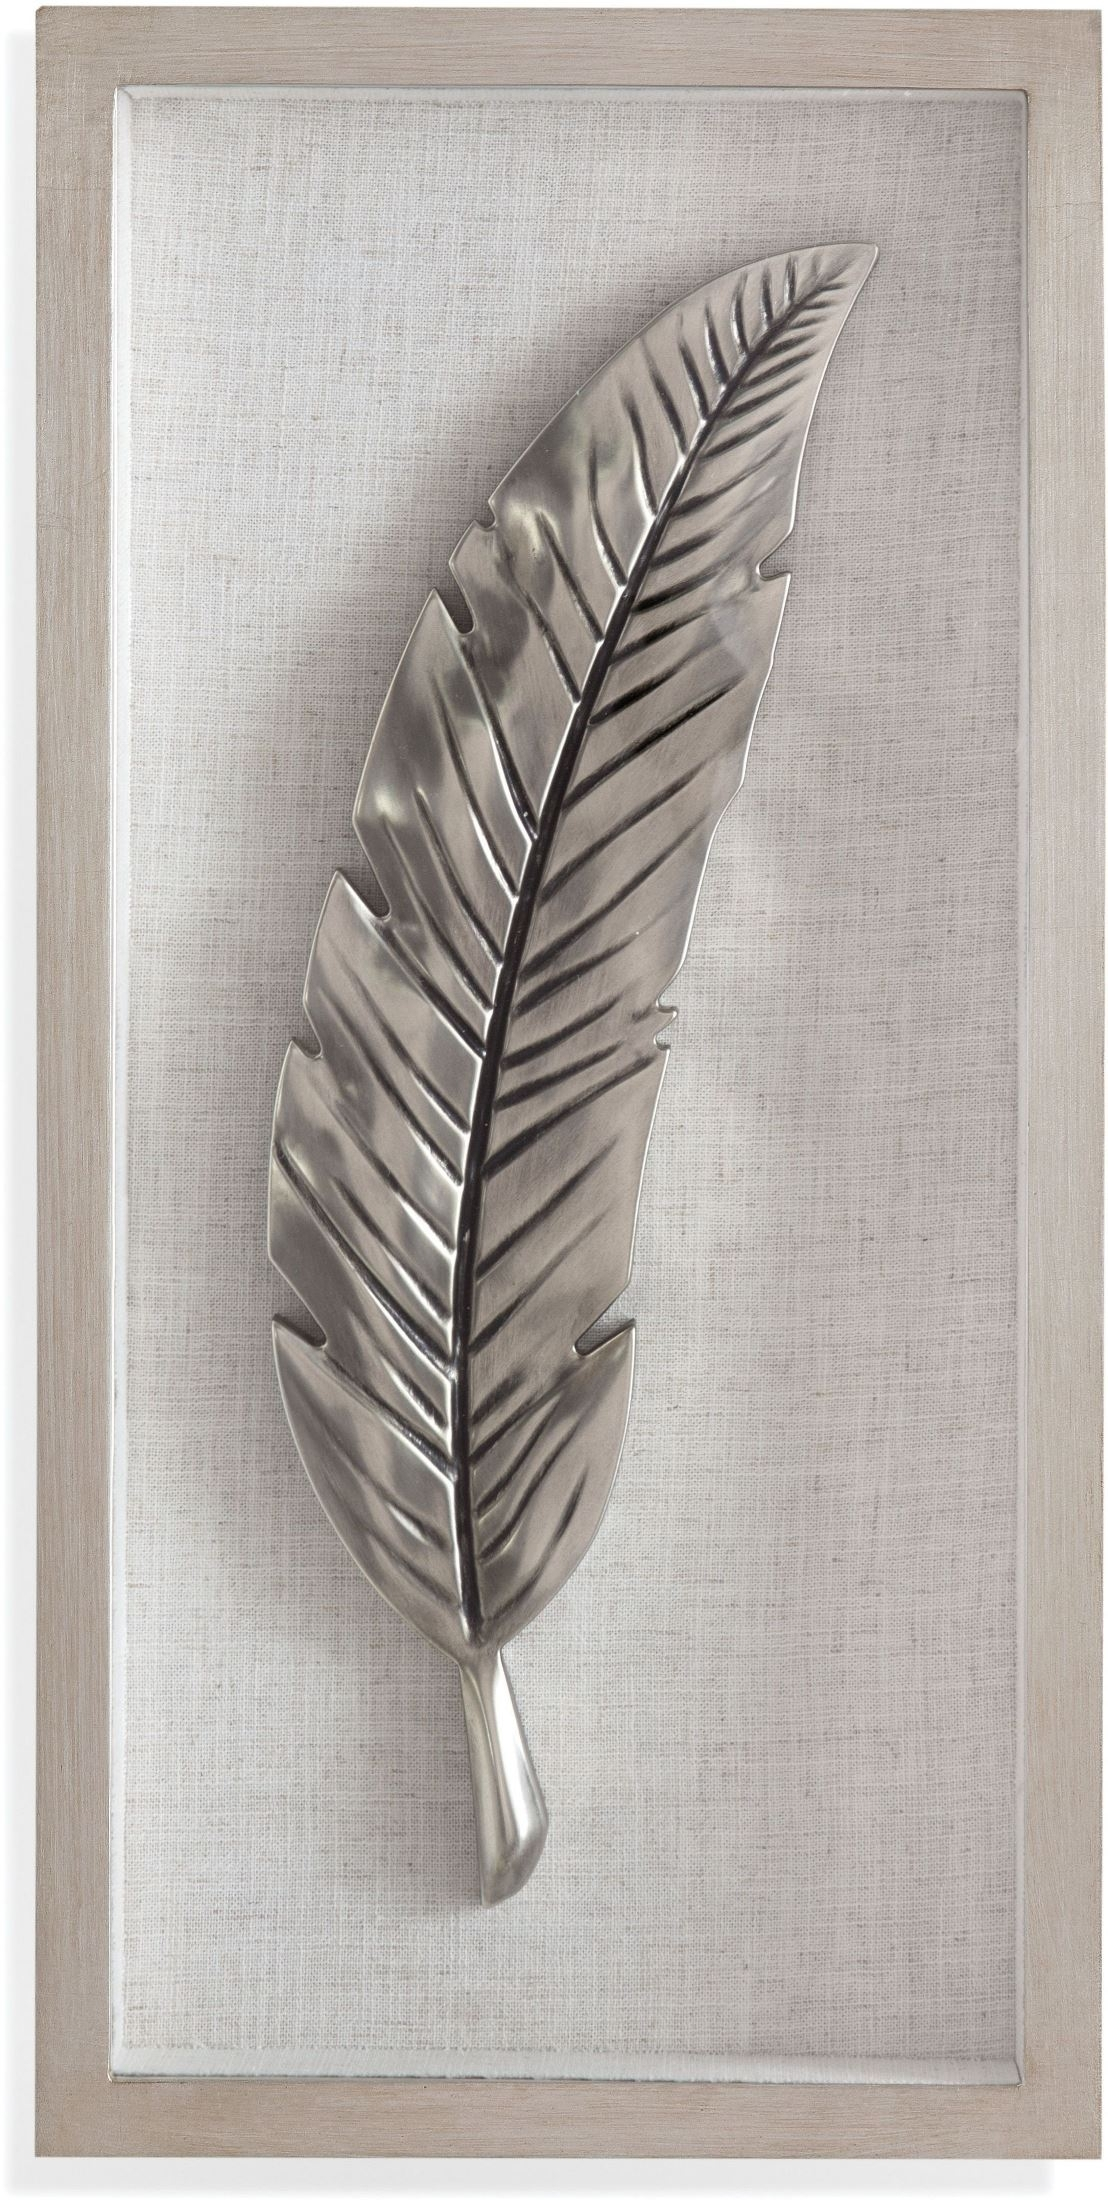 Bassett Mirror Company Silver And Black Feather Wall Art With 2017 Feather Wall Art (View 3 of 20)